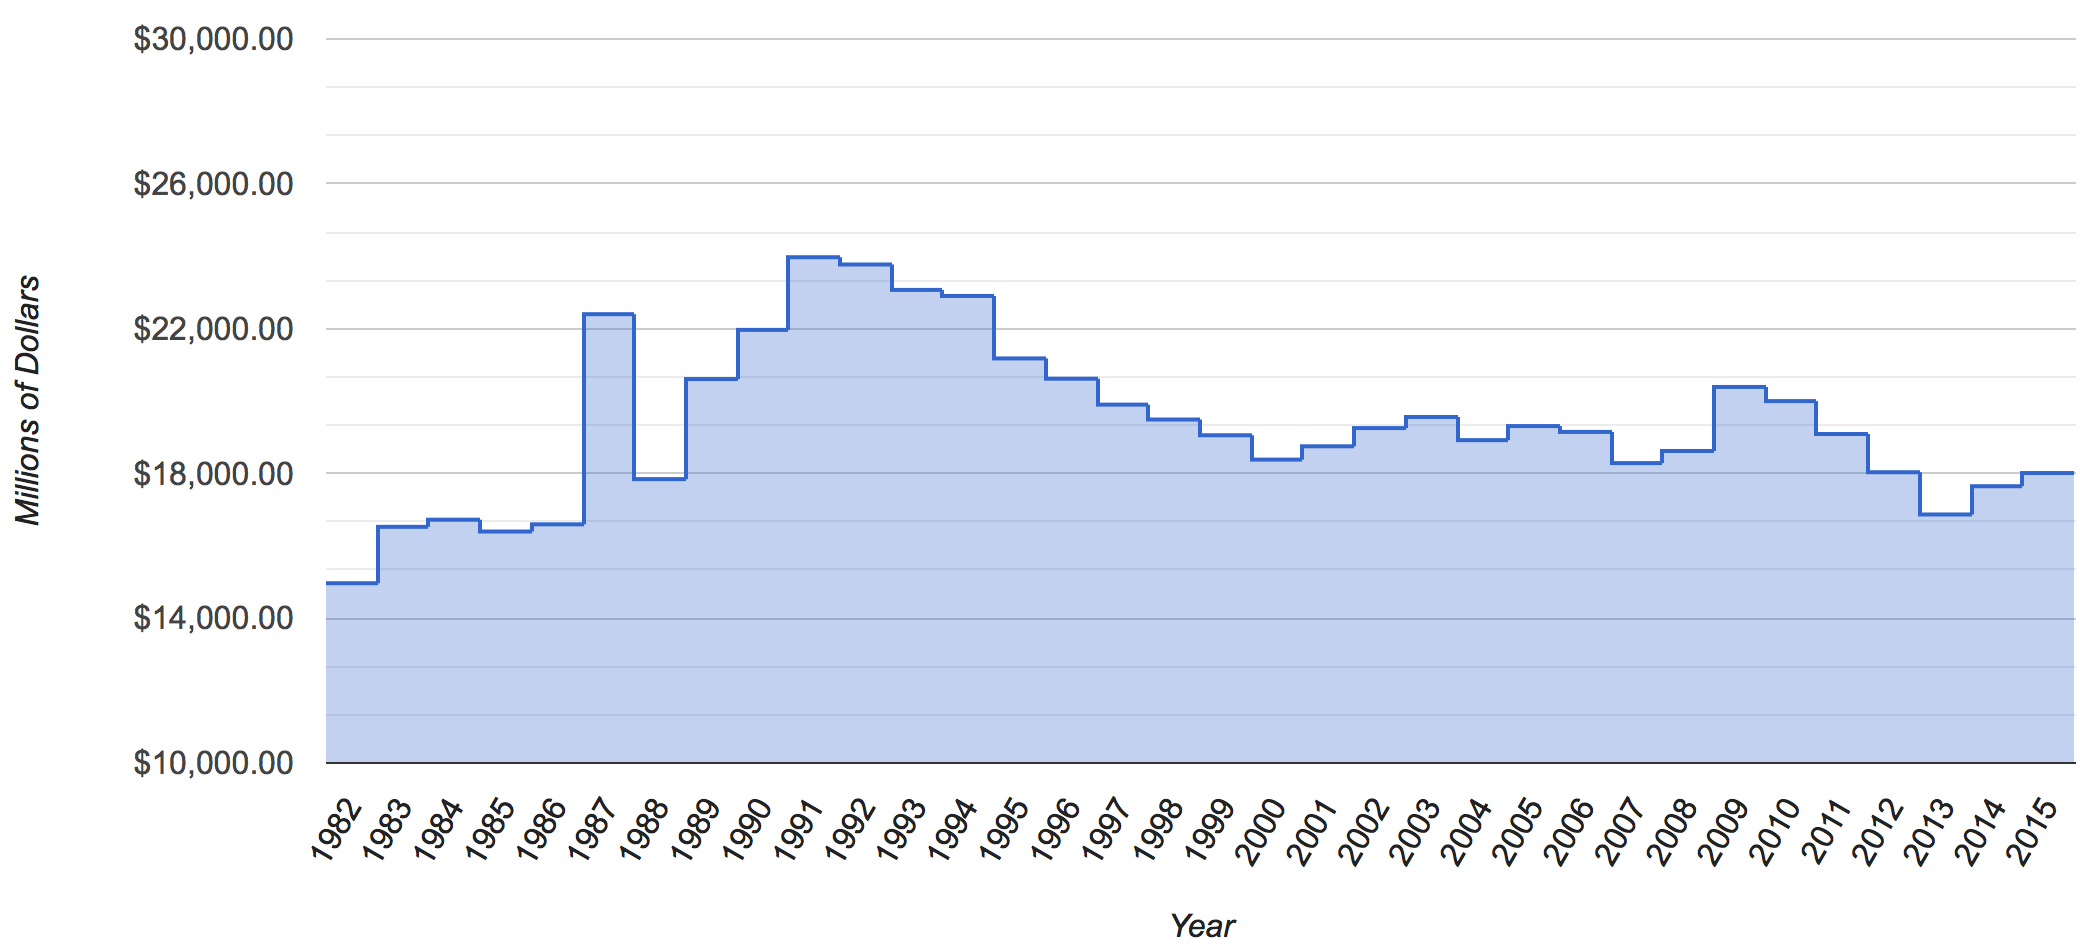 NASA's Budget, 1982 - 2015, Adjusted for Inflation   The ...